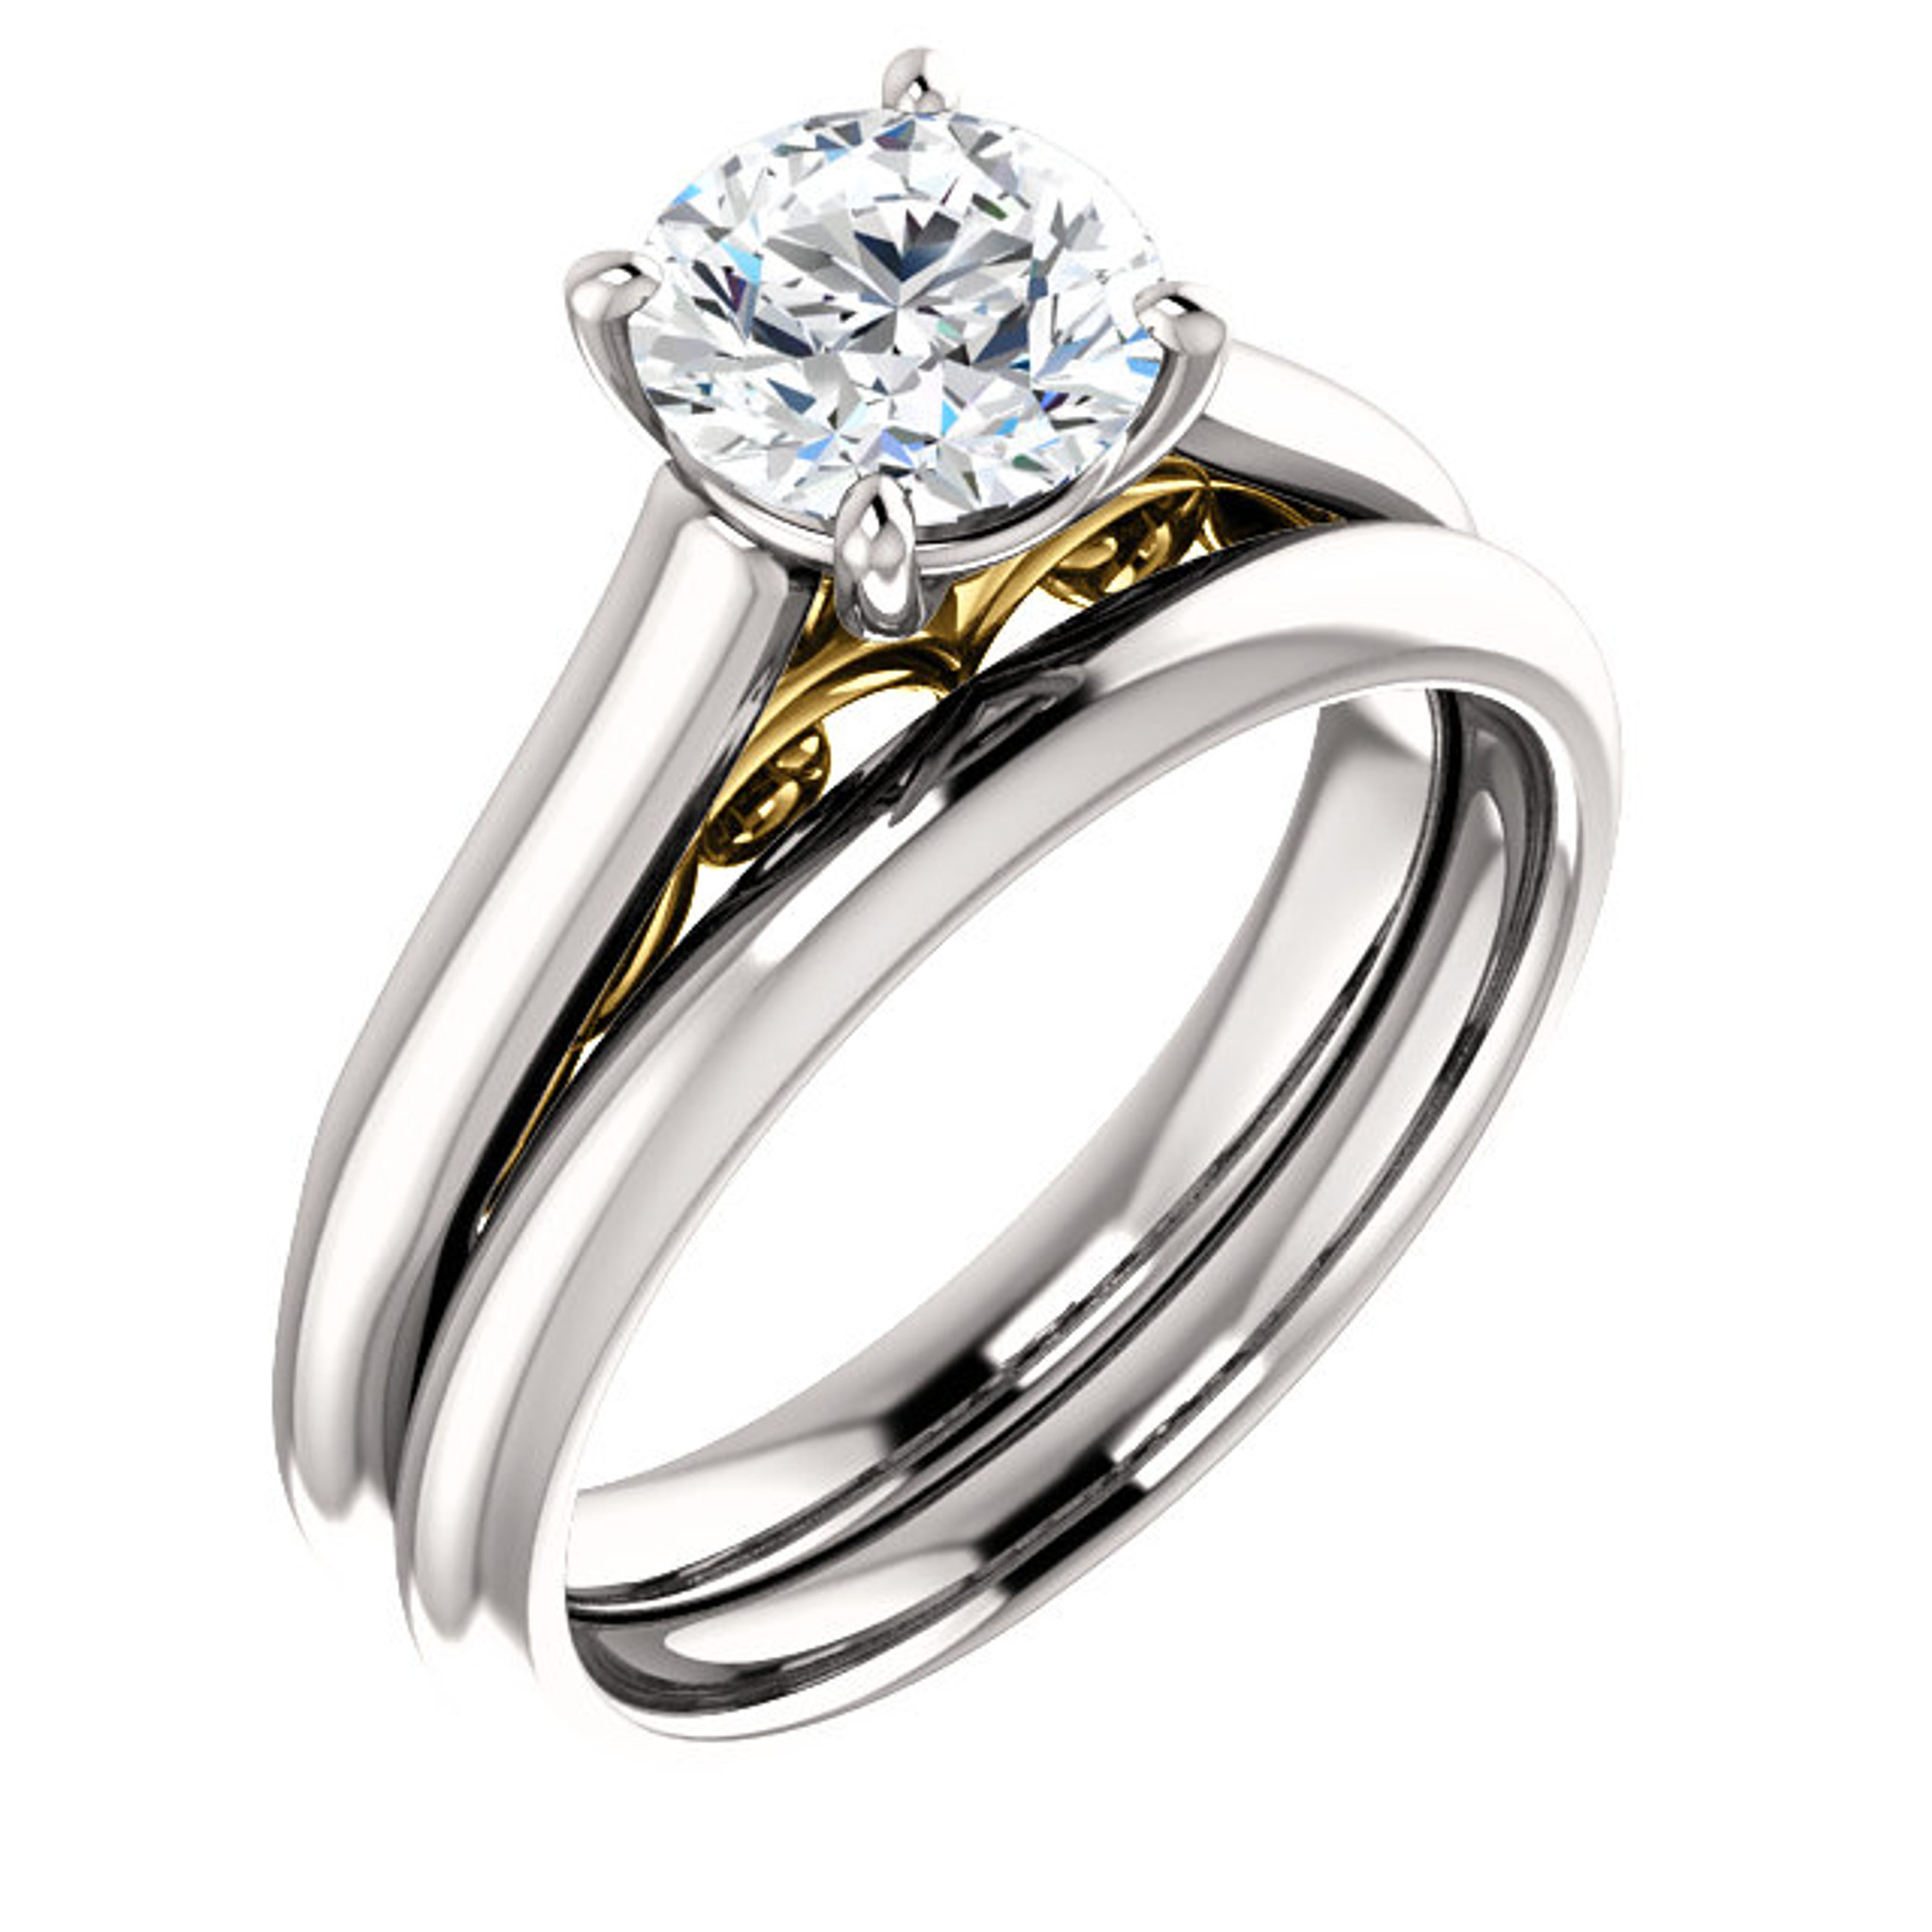 0158044f1eeb02 Stunning 1 Carat Round Cubic Zirconia Solitaire Engagement Ring & Matching  Band in Solid 14 Karat ...